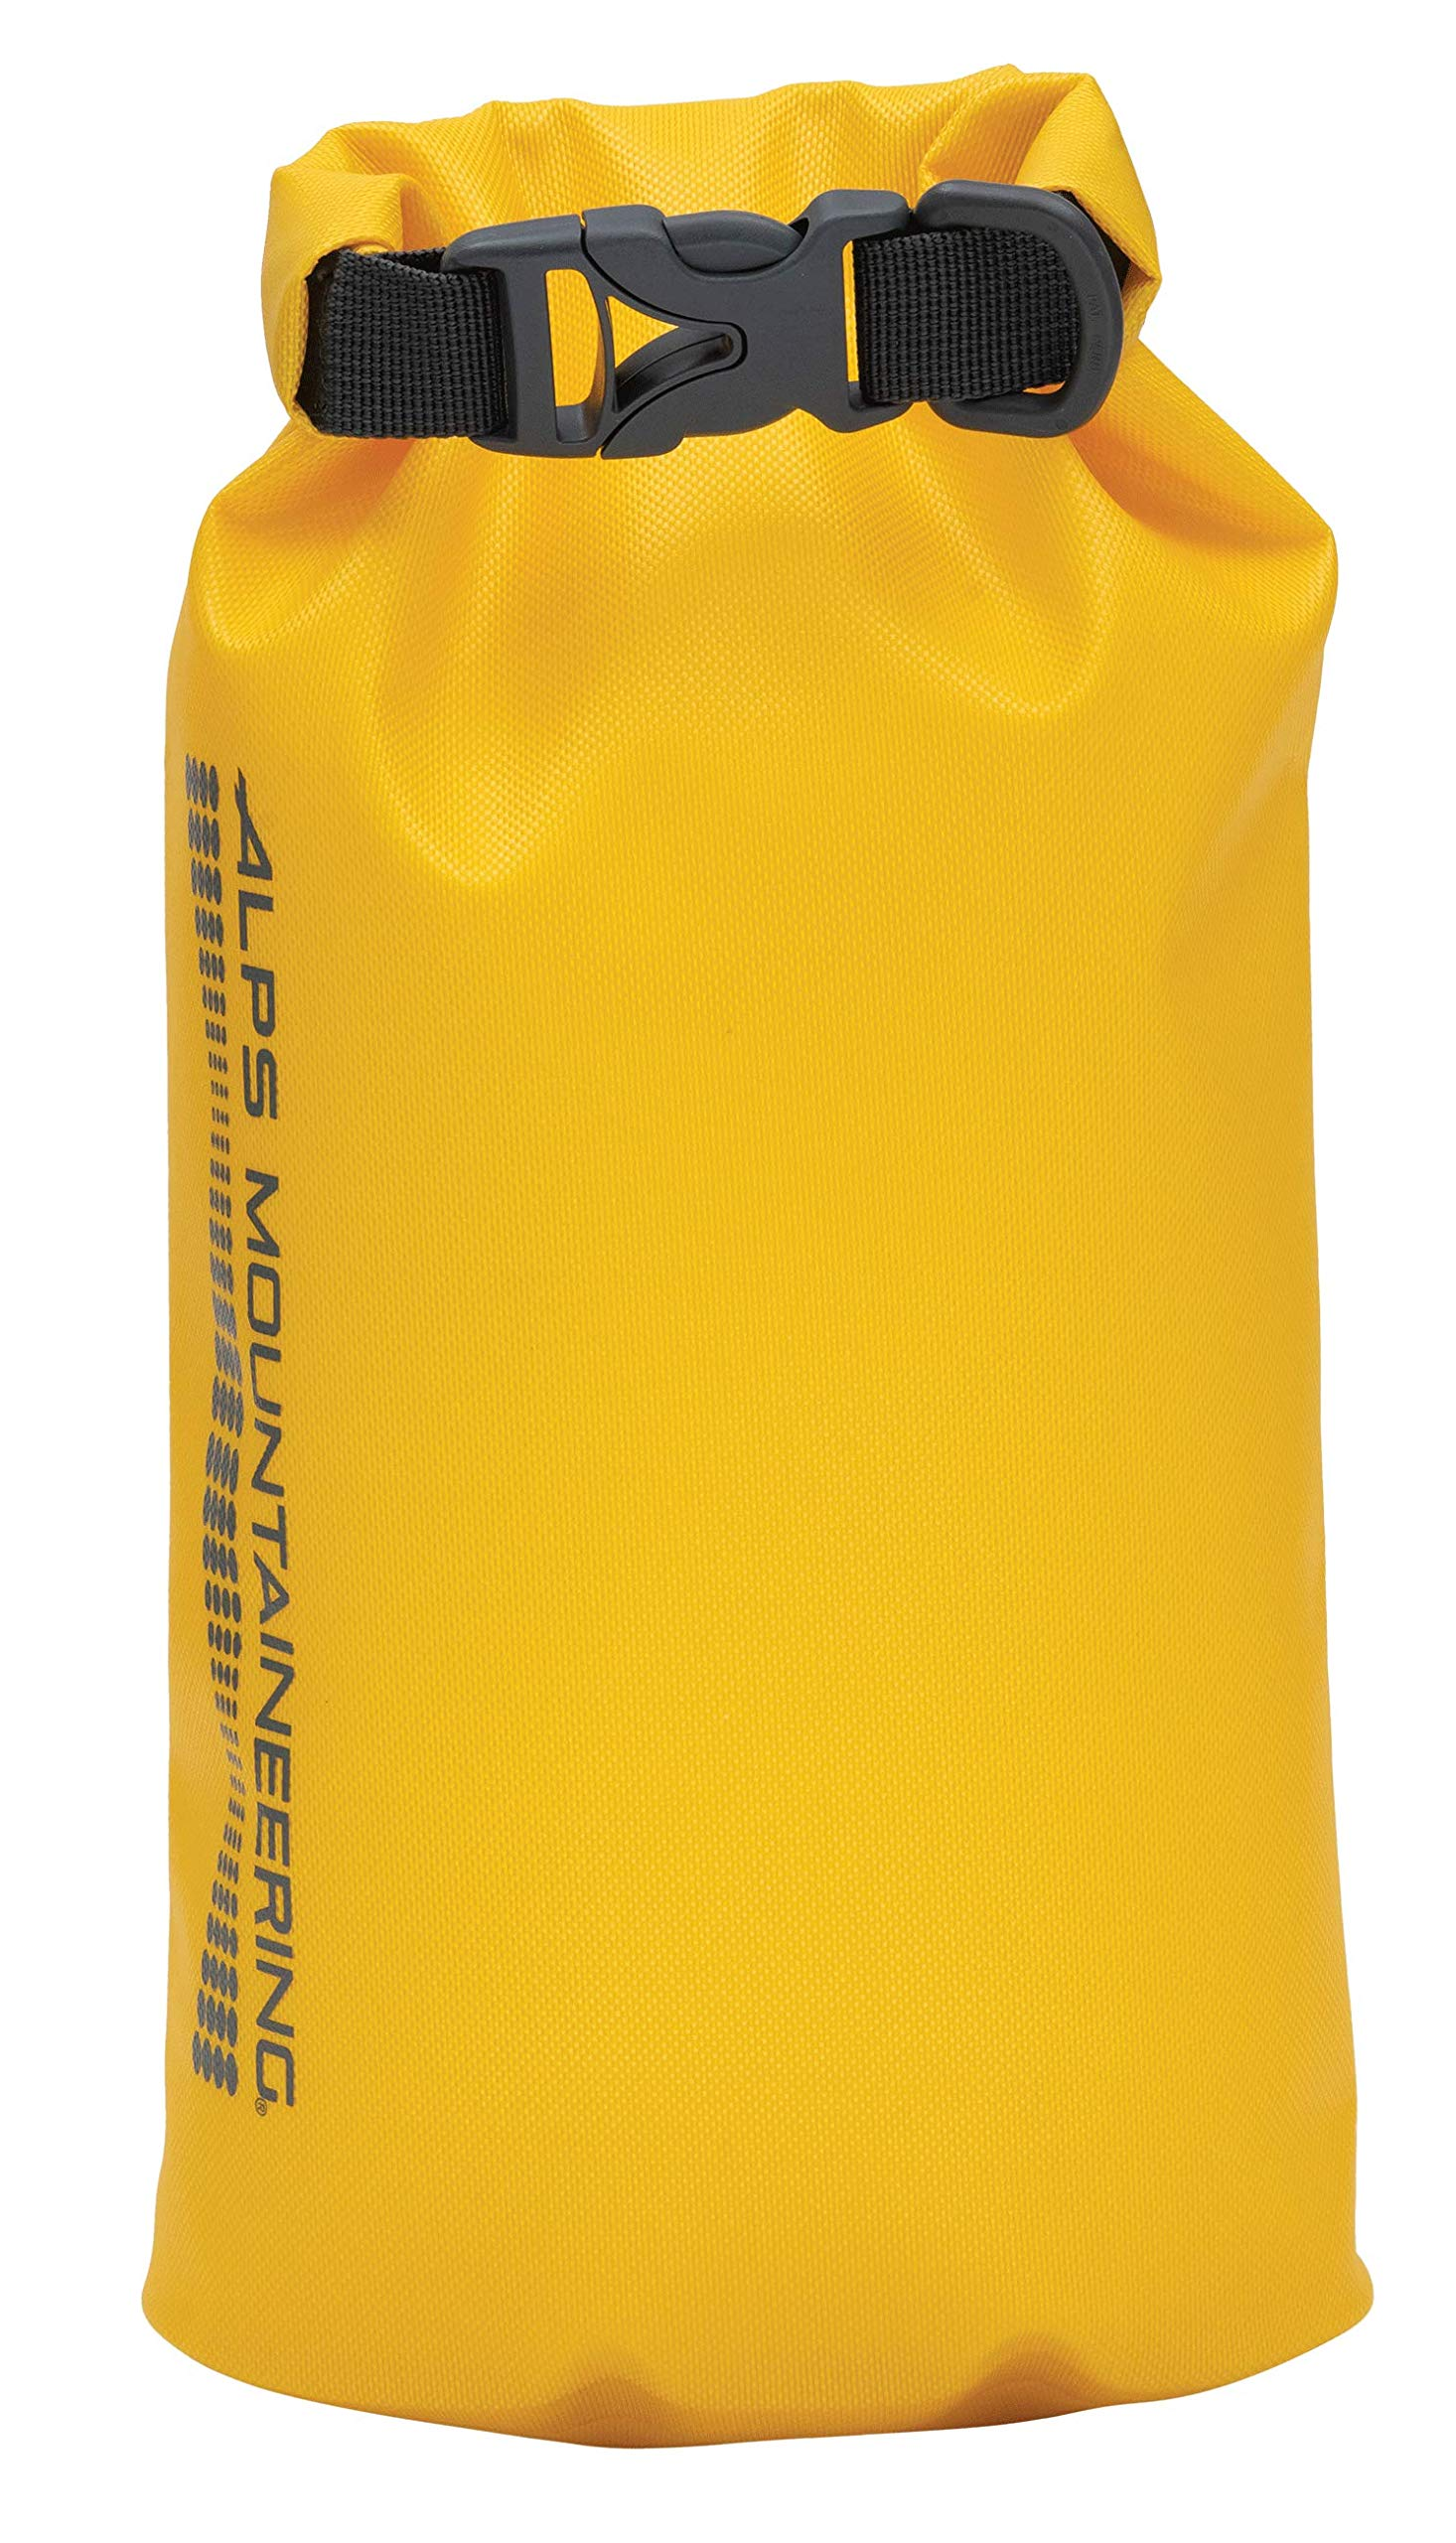 ALPS Mountaineering Dry Passage Waterproof Dry Bag 5L, Gold by ALPS Mountaineering